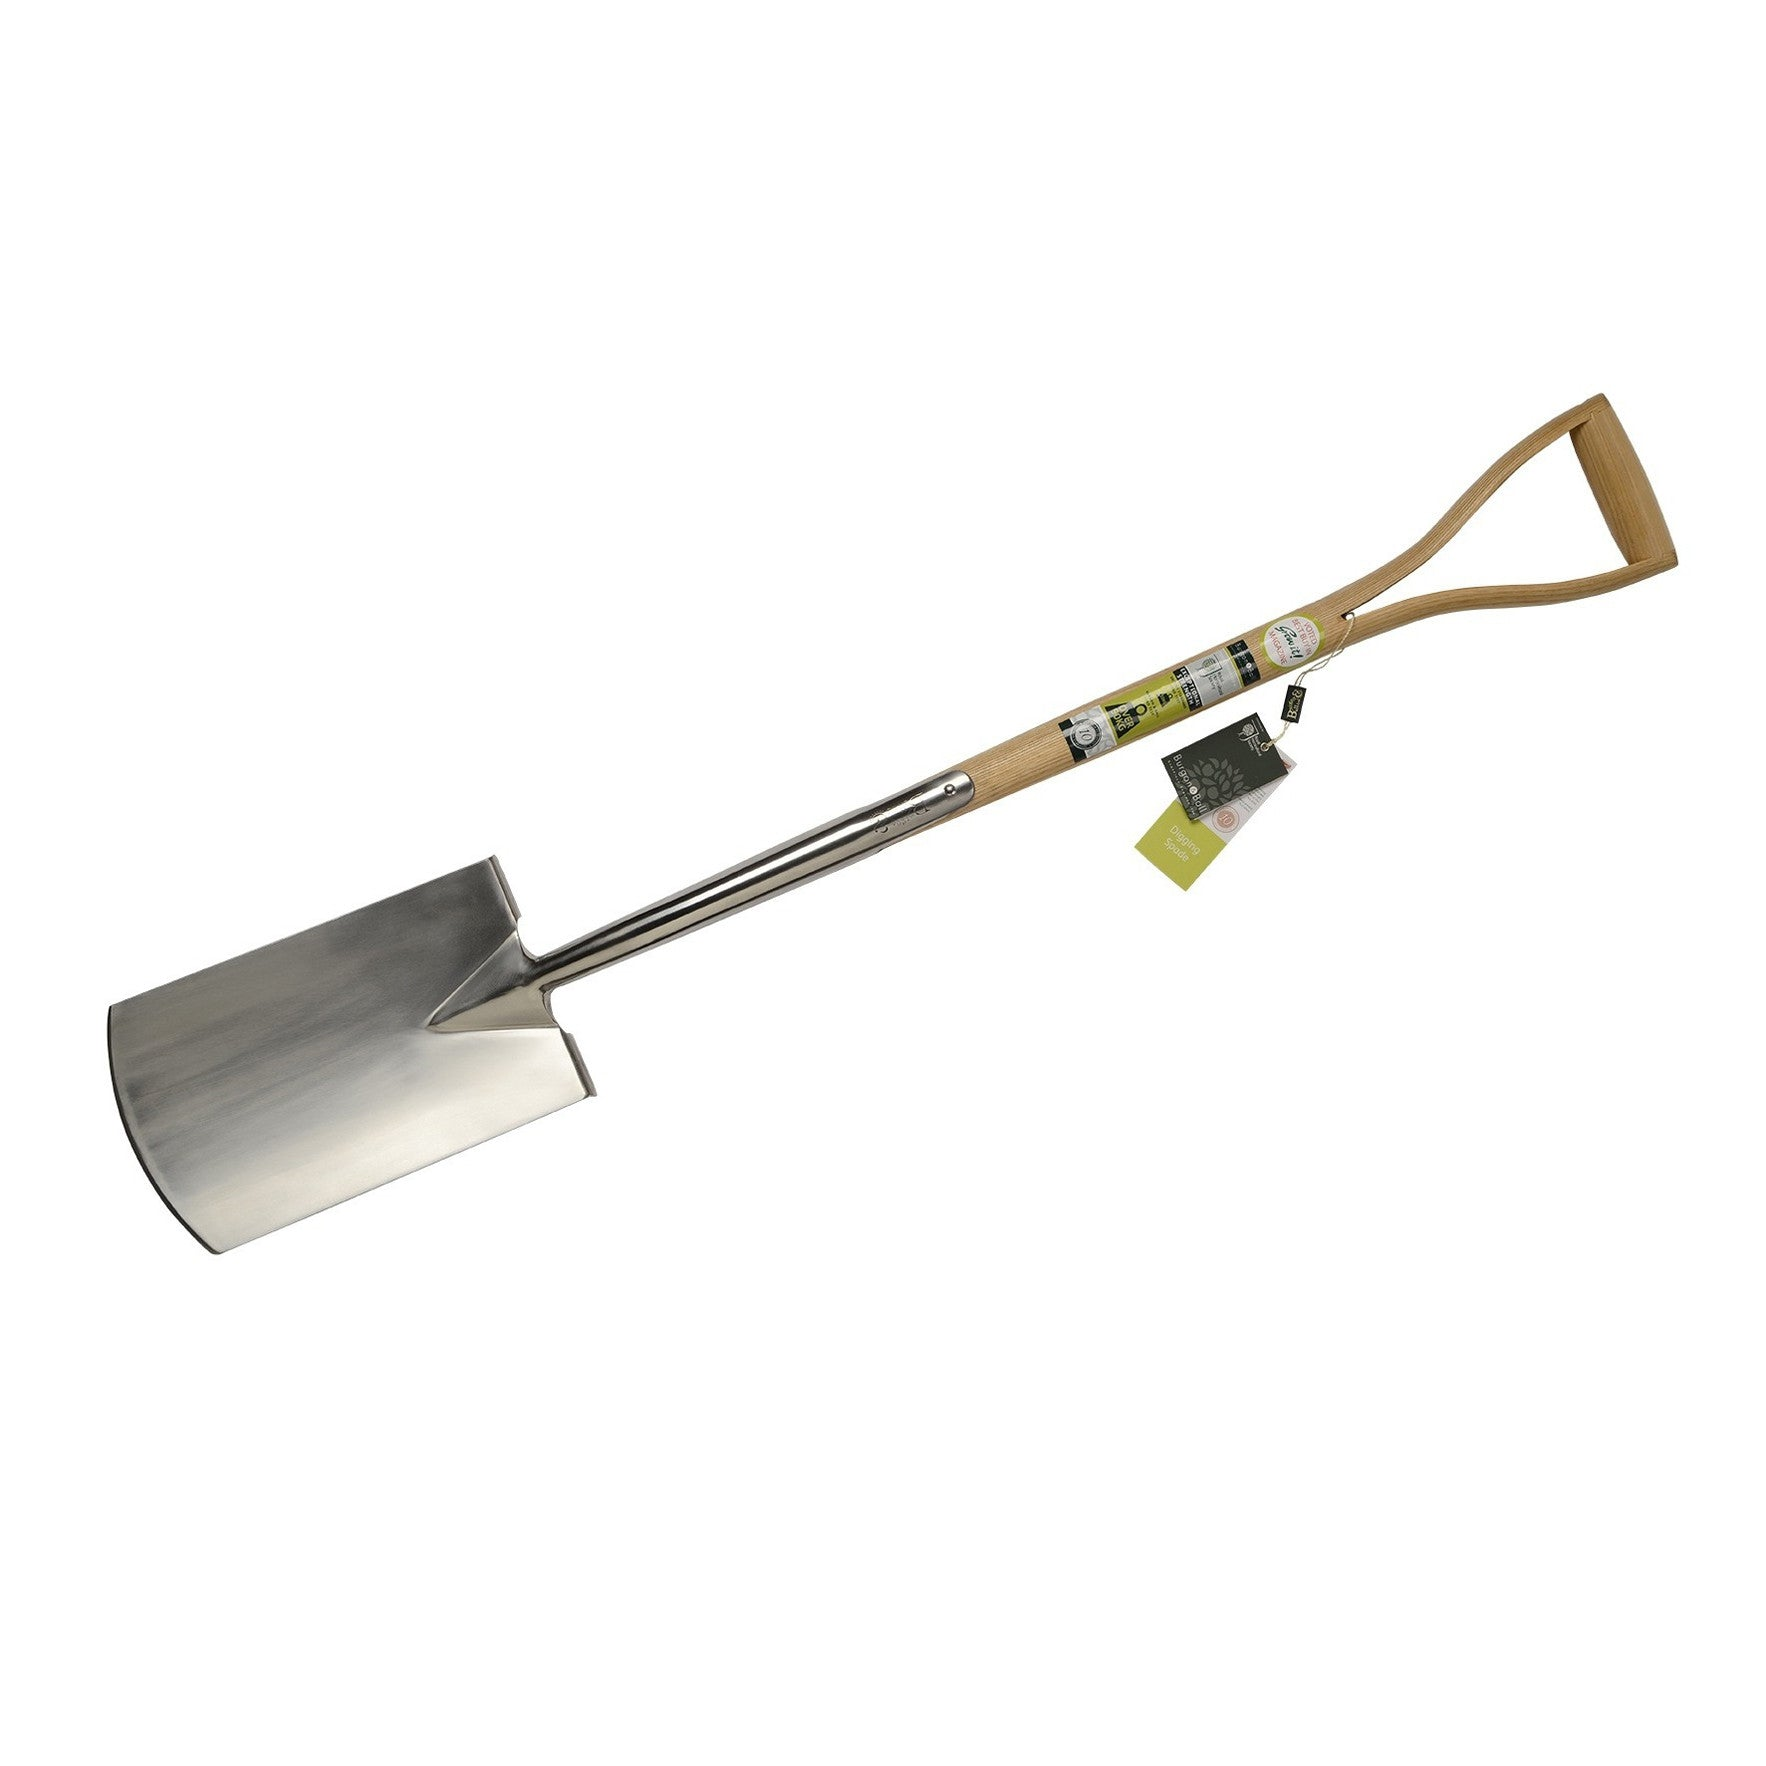 Digging Spade - Stainless Steel - The Potting Shed Garden Tools